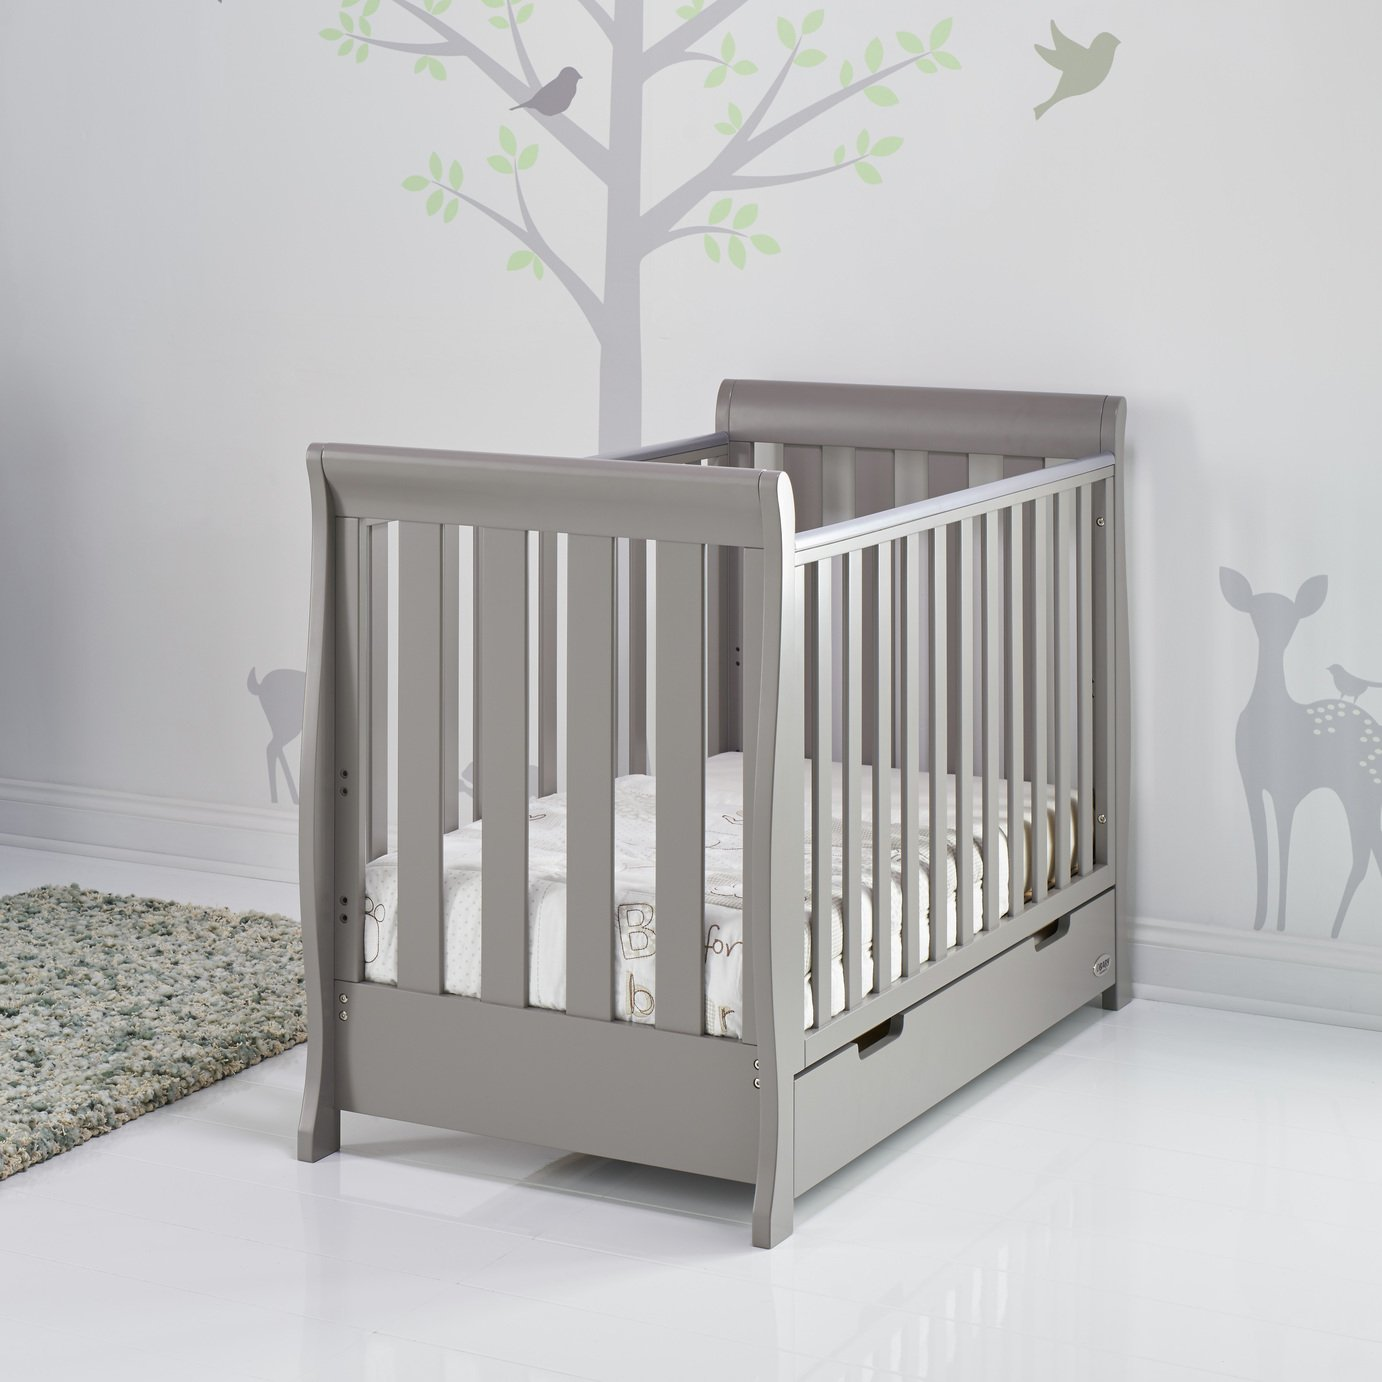 Obaby Stamford Mini Sleigh Cot Bed and Drawer - Taupe Grey